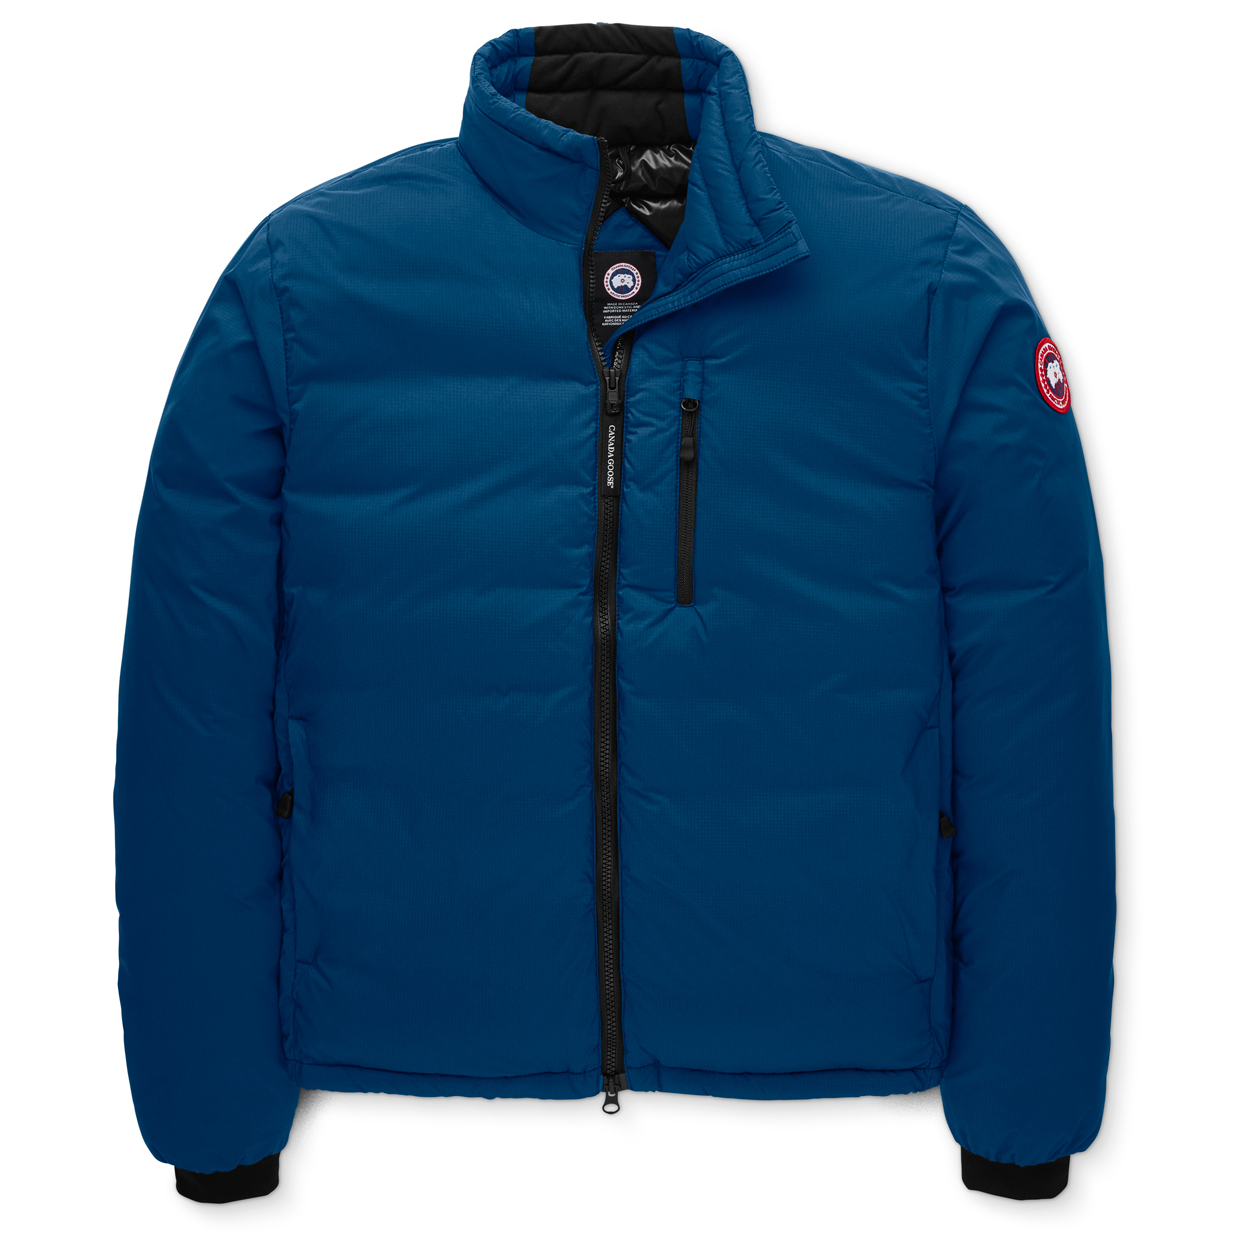 Canada Goose Lodge Jacket Winter Jacket Men's Free UK